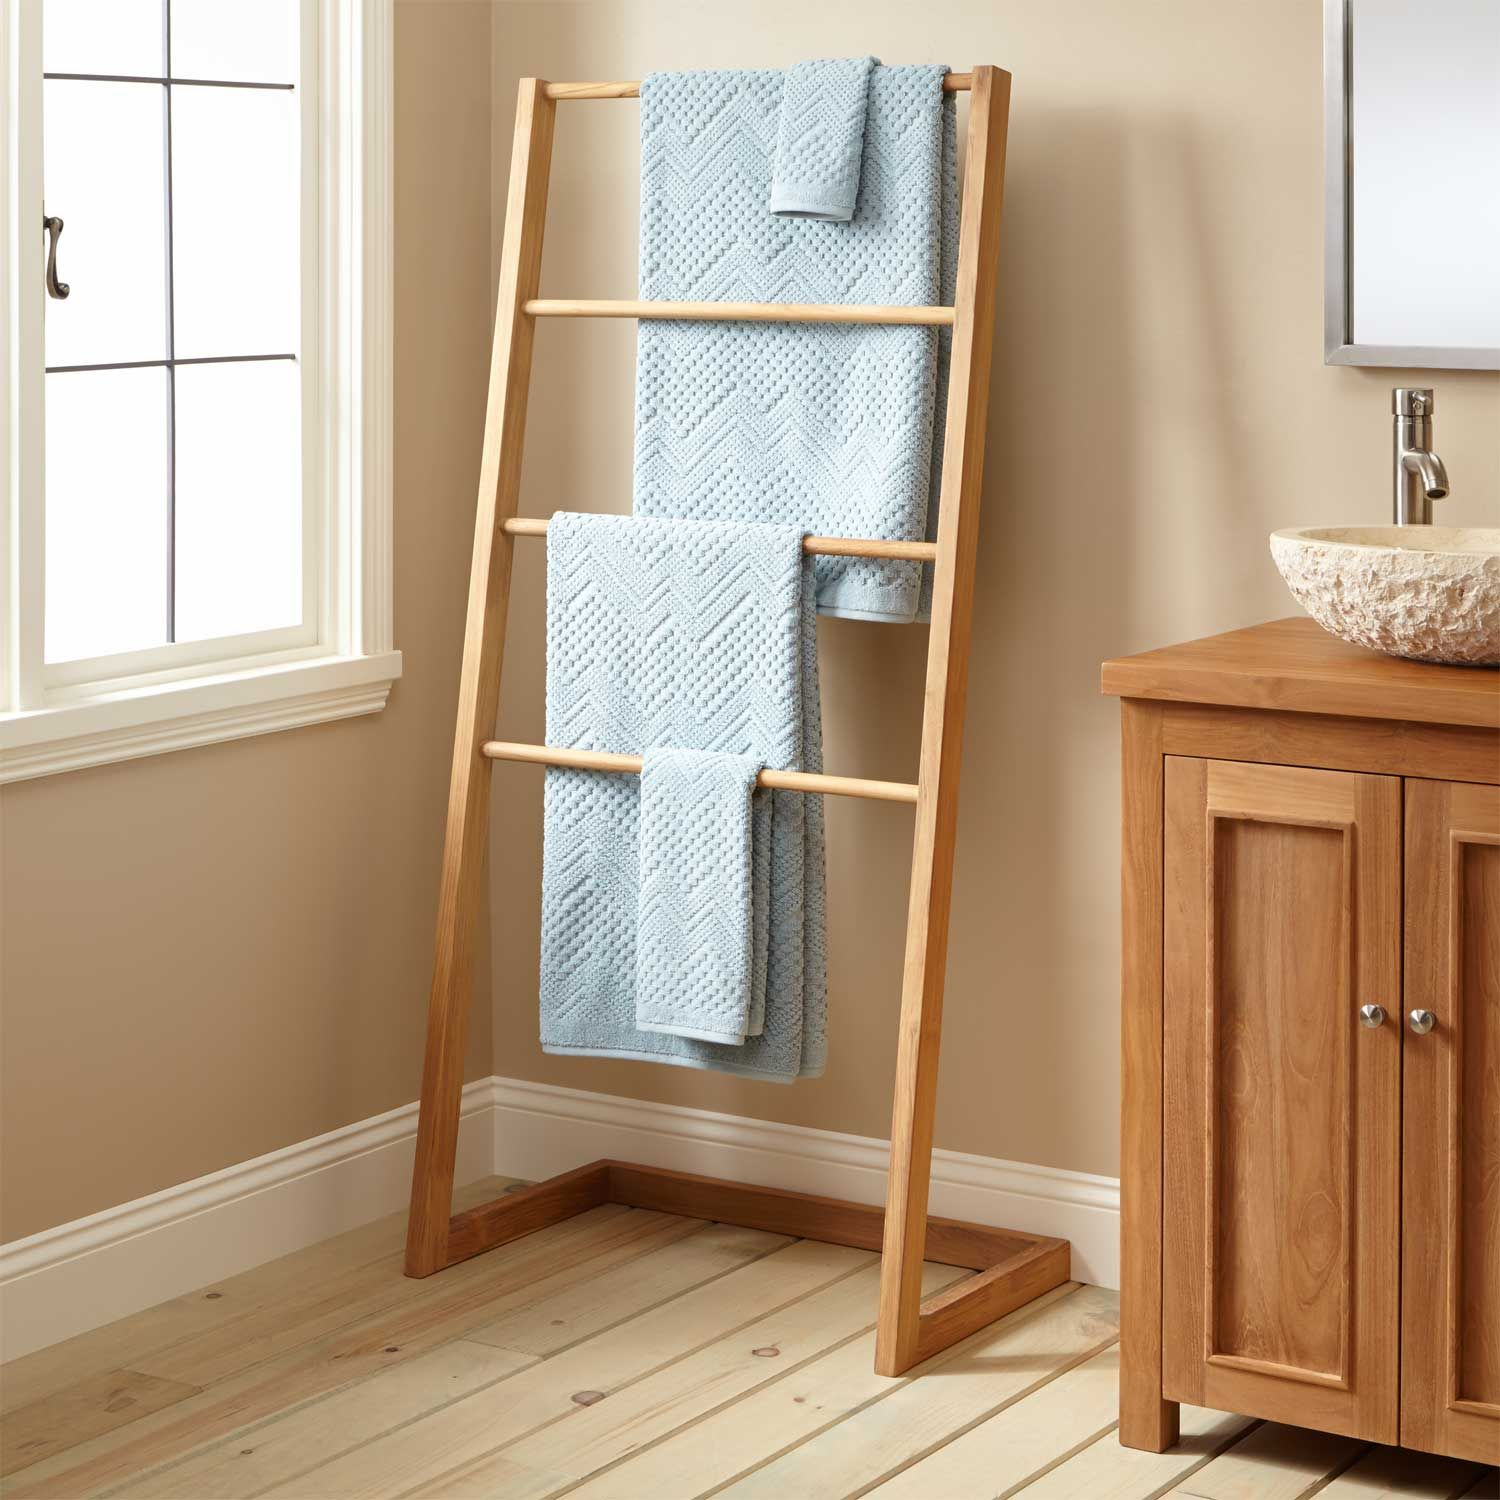 Hauck Teak Towel Shelf With Stainless Steel Hangers Bathroom